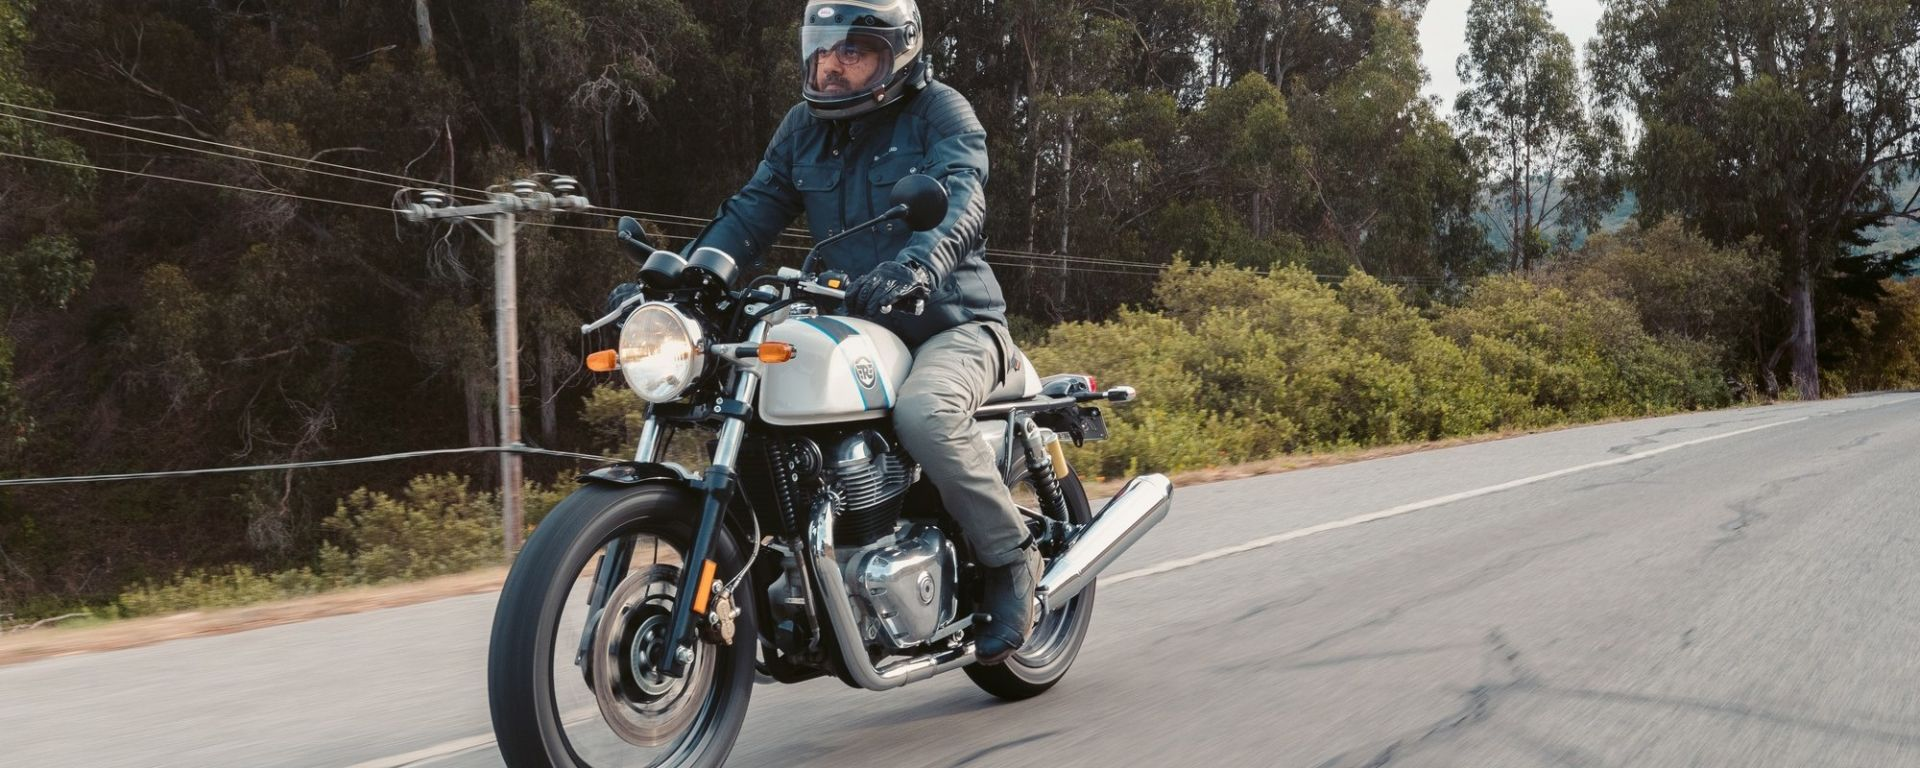 Nuova Royal Enfield Continental GT 650